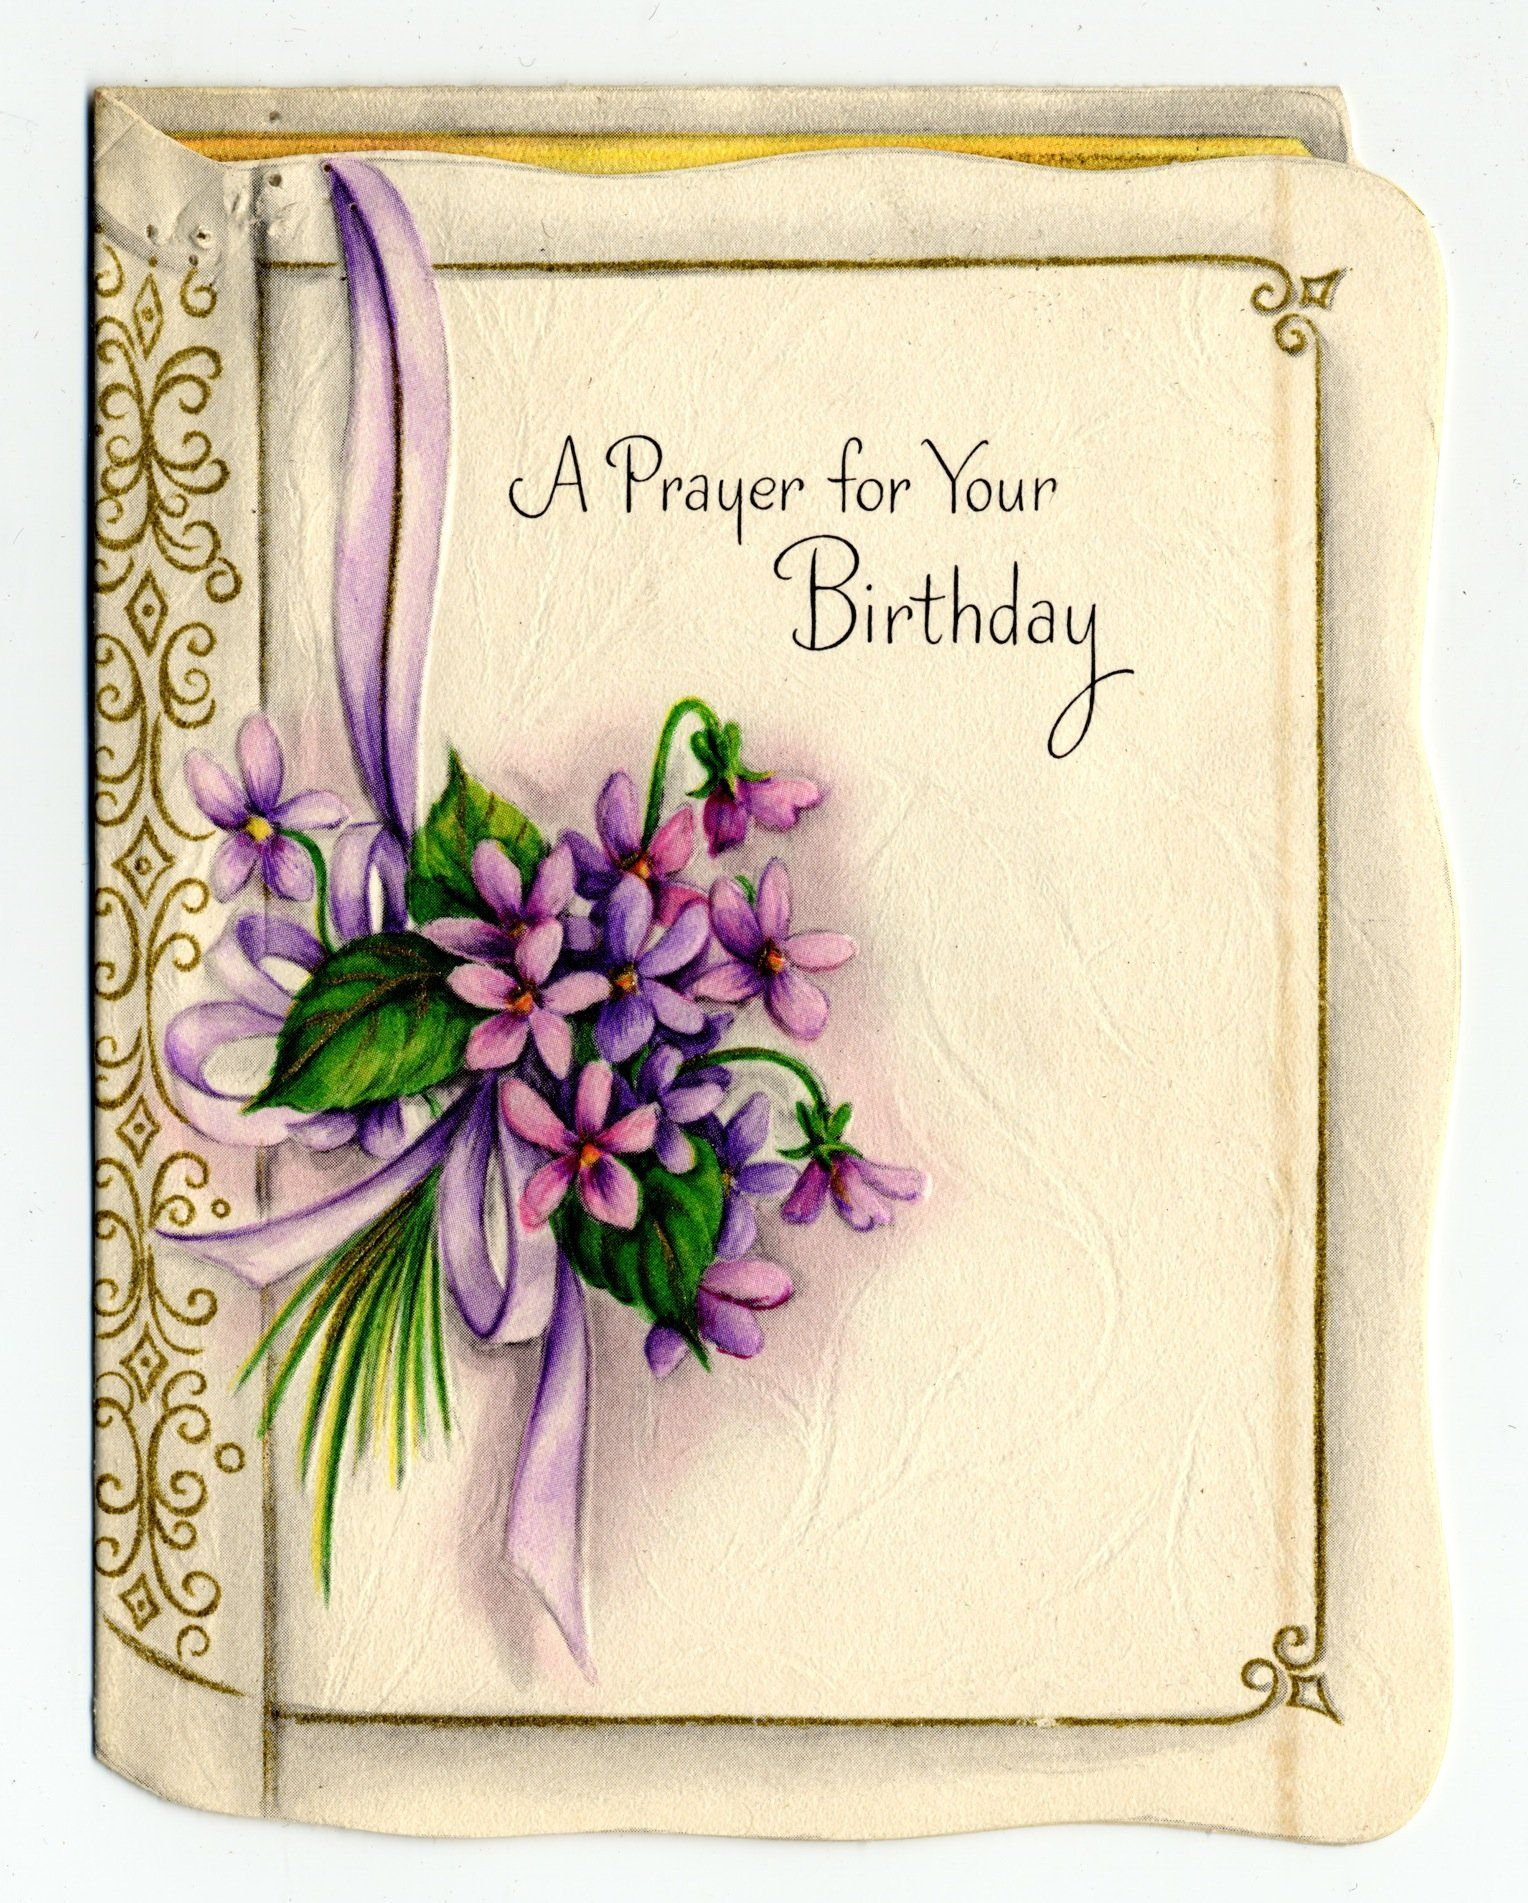 Verse for card best friend birthday google search verses verse for card best friend birthday google search bookmarktalkfo Choice Image